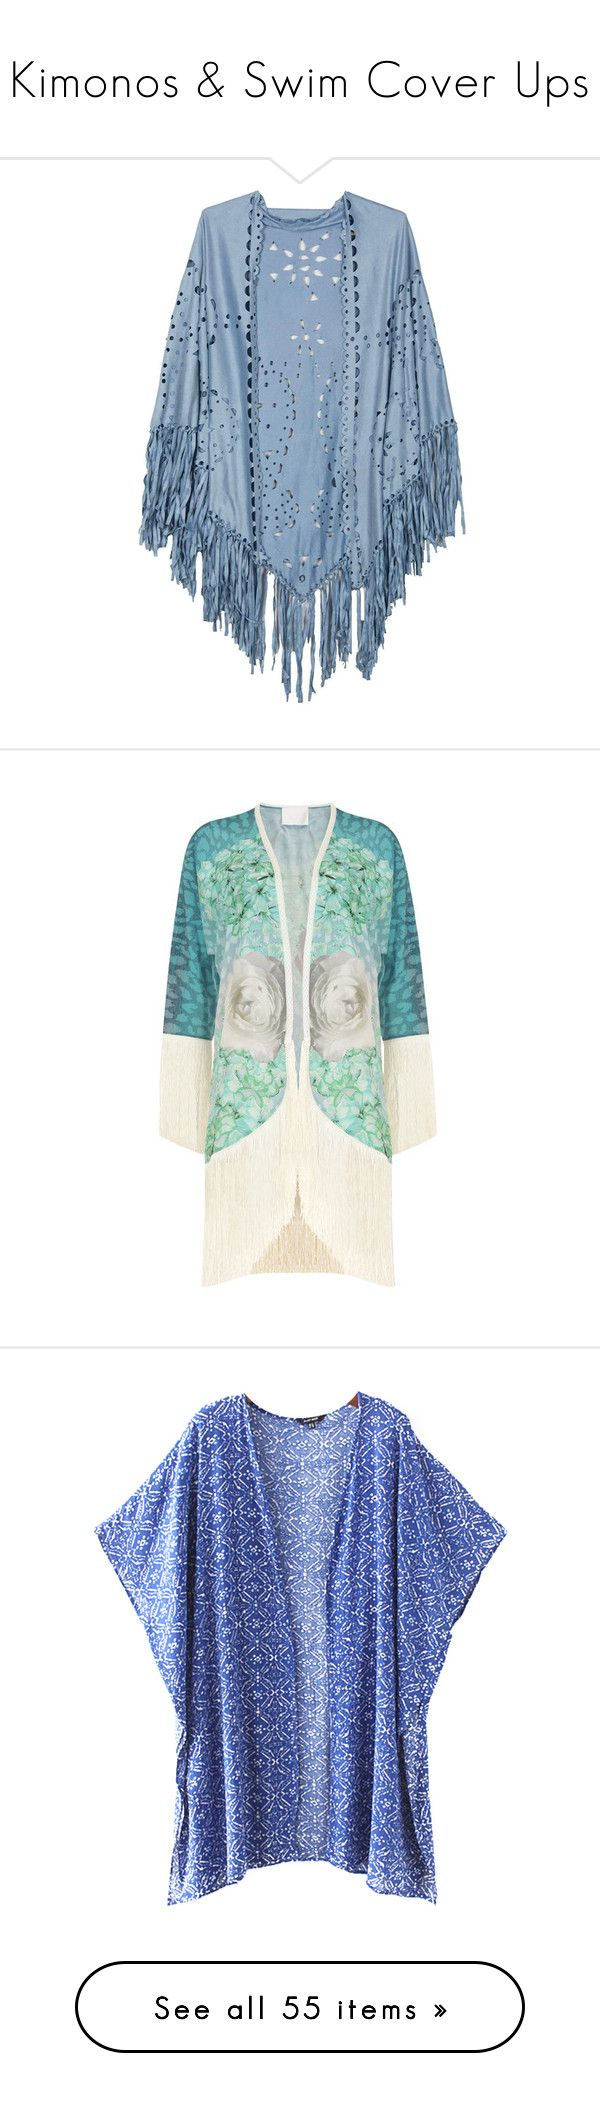 """Kimonos & Swim Cover Ups"" by katrinaalice ❤ liked on Polyvore featuring Summer, boho, swimwear, kimono, coverUp, tops, blouses, fringe blouse, blue kimono and floral blouse"